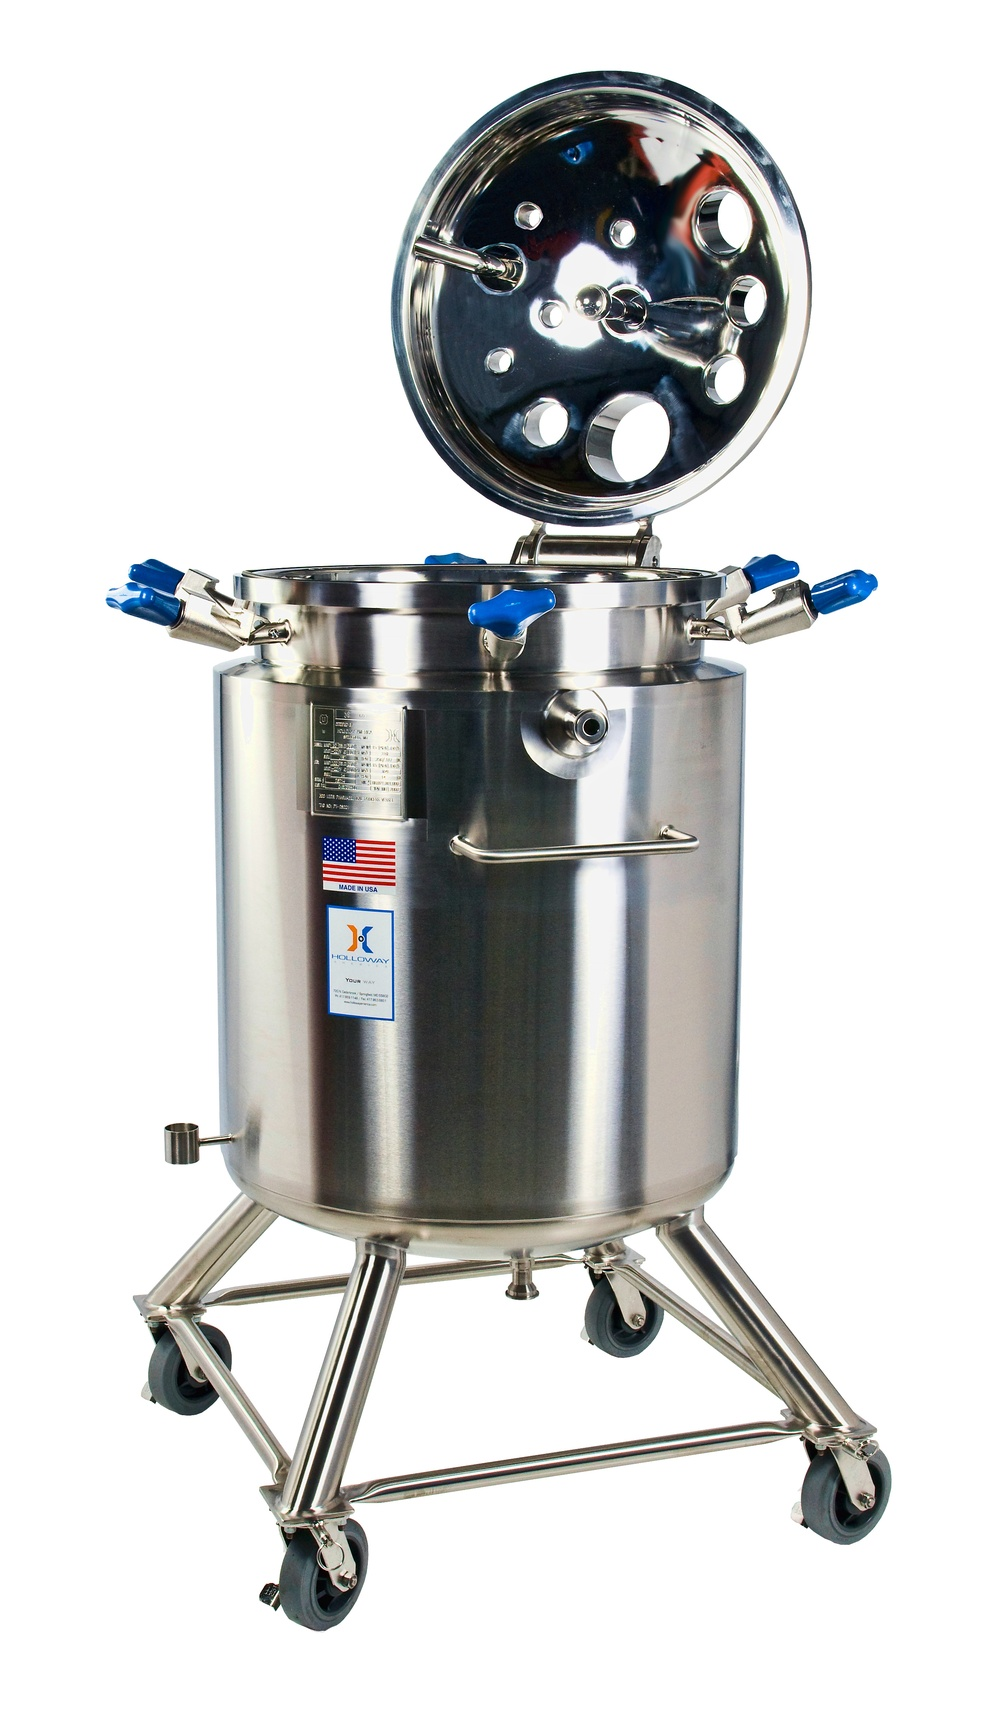 Another portable mix tank, this mixing vessel is built to spec.